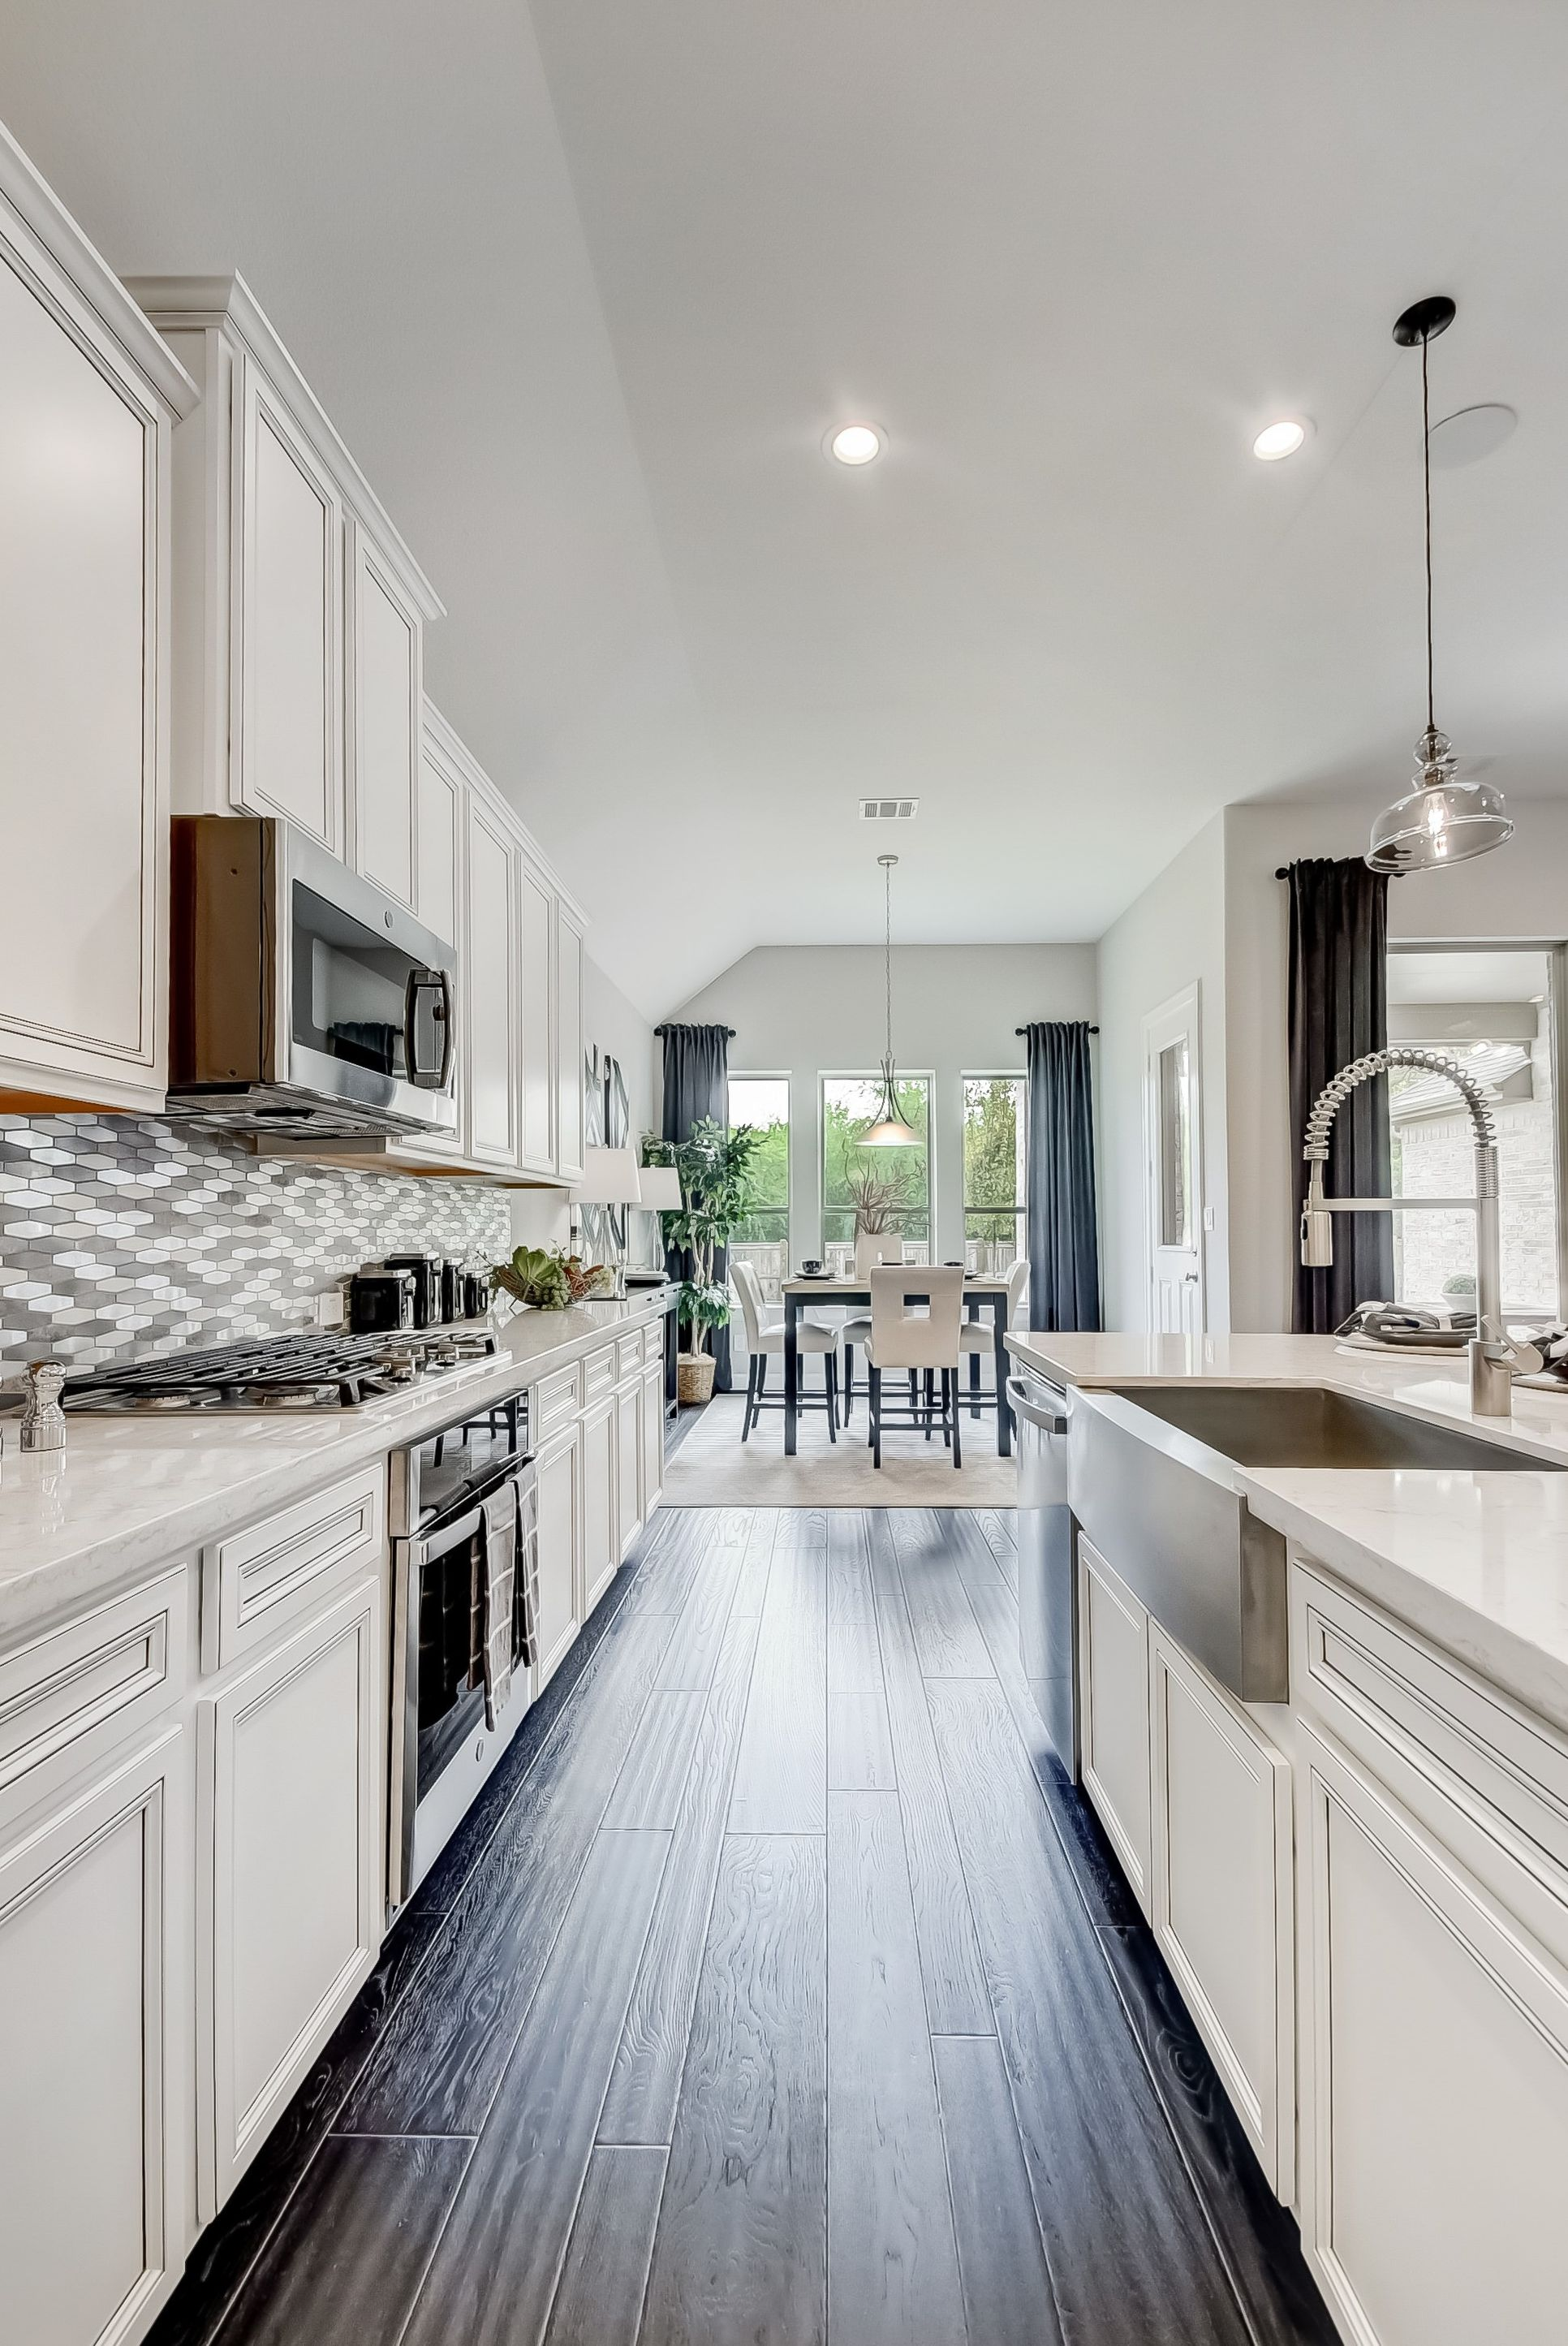 Interior:Ample cabinet space